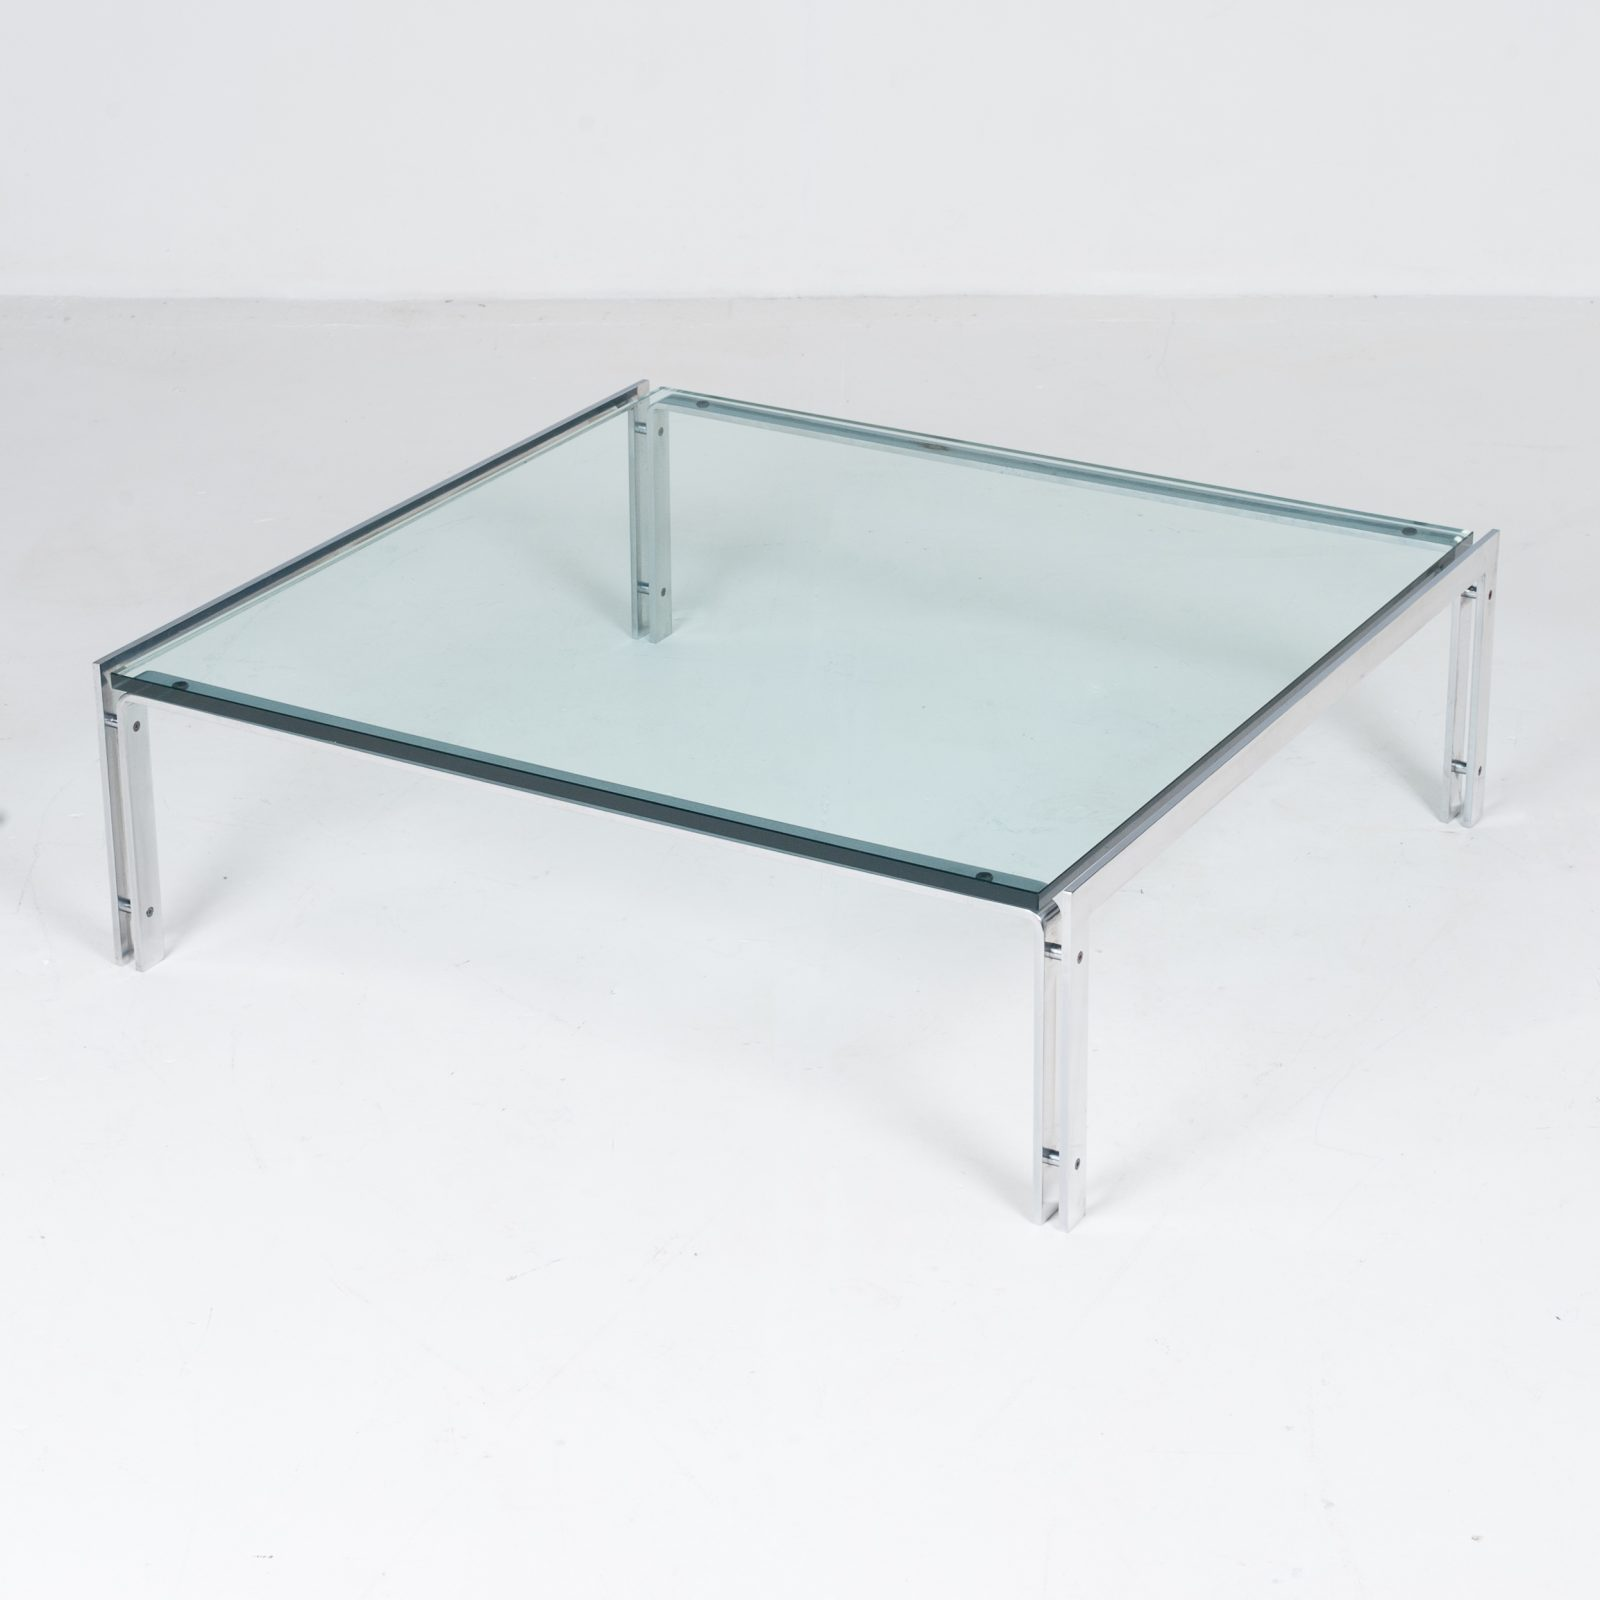 Coffee Table By Metaform In Glass And Chrome, 1970s, The Netherlands60